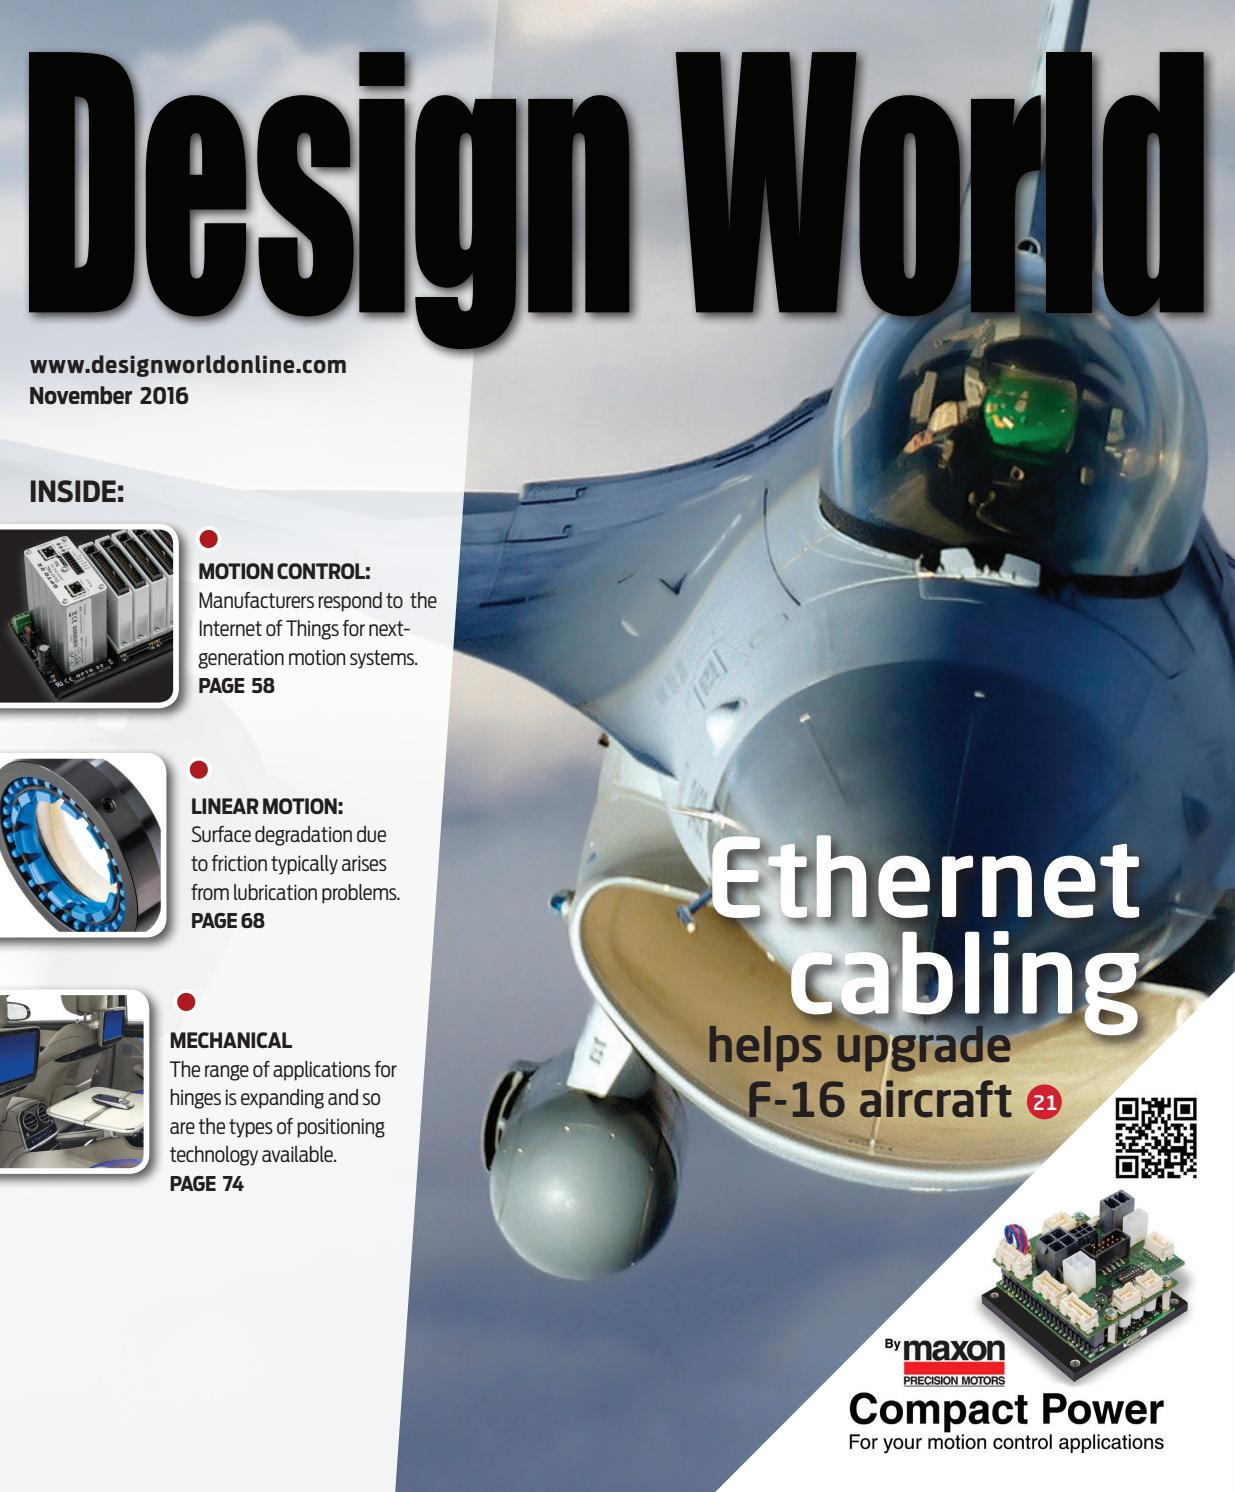 Design World November 2016 By Wtwh Media Llc Issuu Most Versatile Electronics Simulator In The Autodesk Circuits